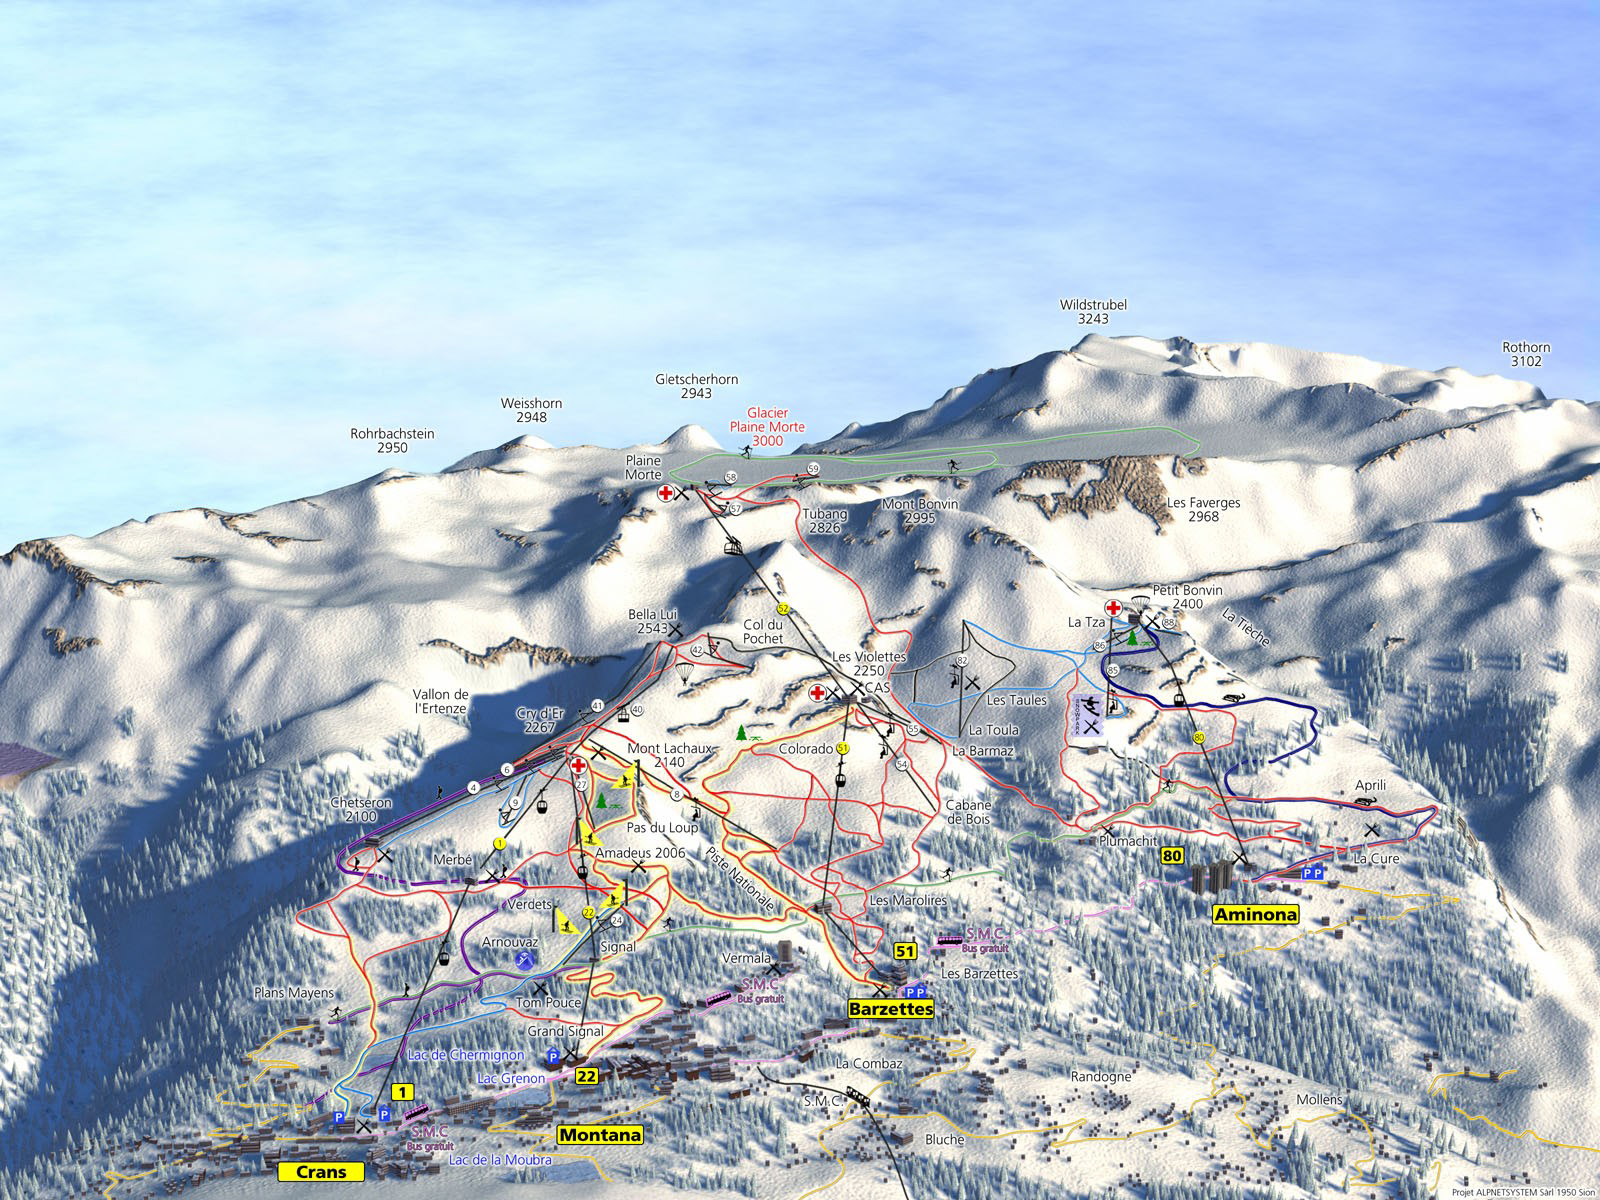 Crans Montana Ski Resort Guide Location Map Crans Montana ski